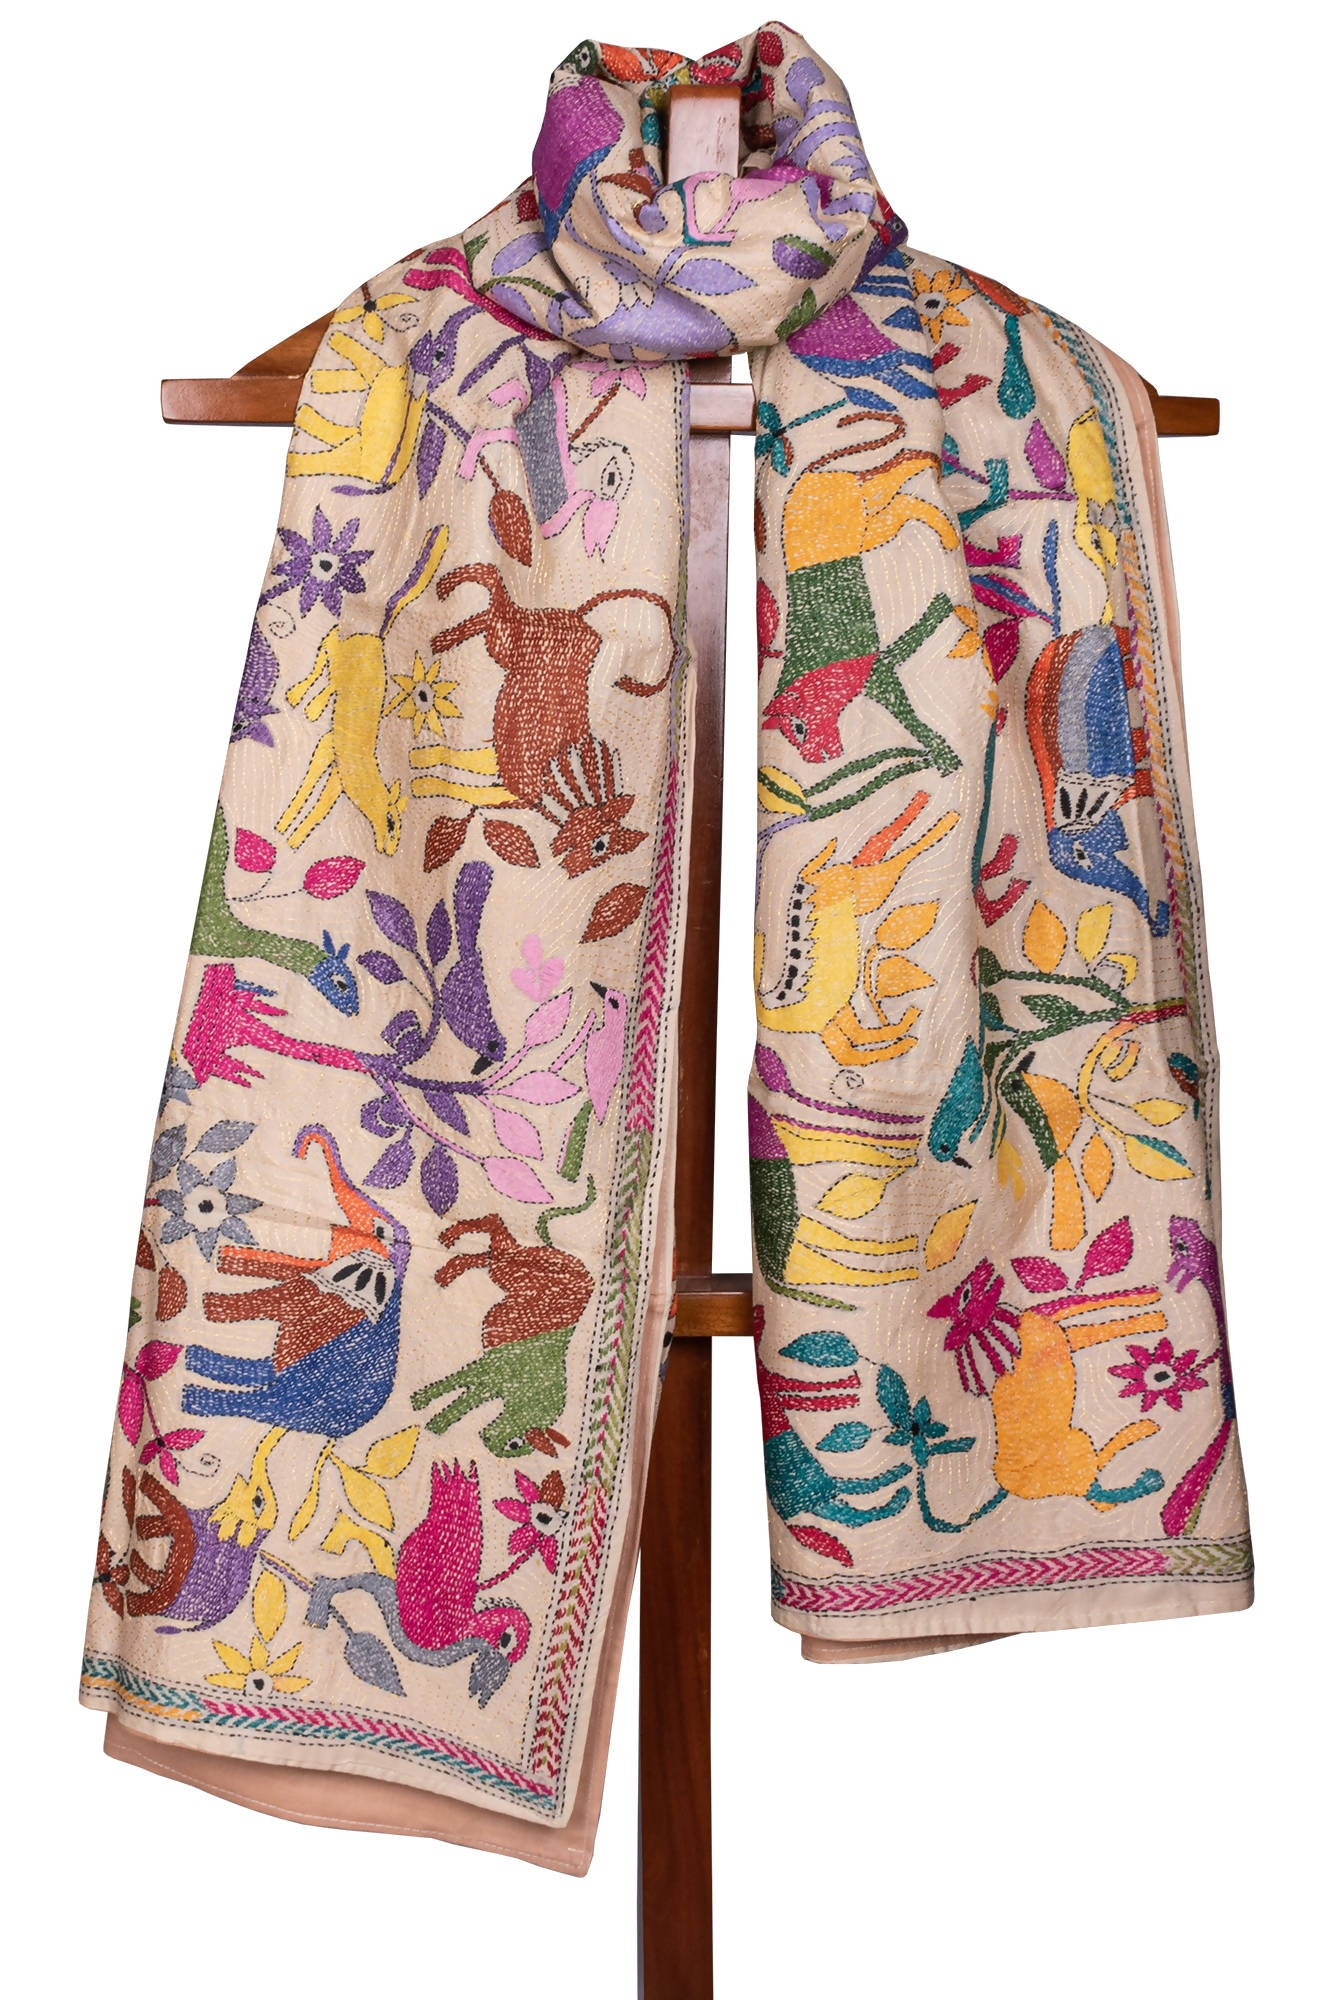 Biswa bangla multicolor animal design tussar Kantha Shawl with Interlining